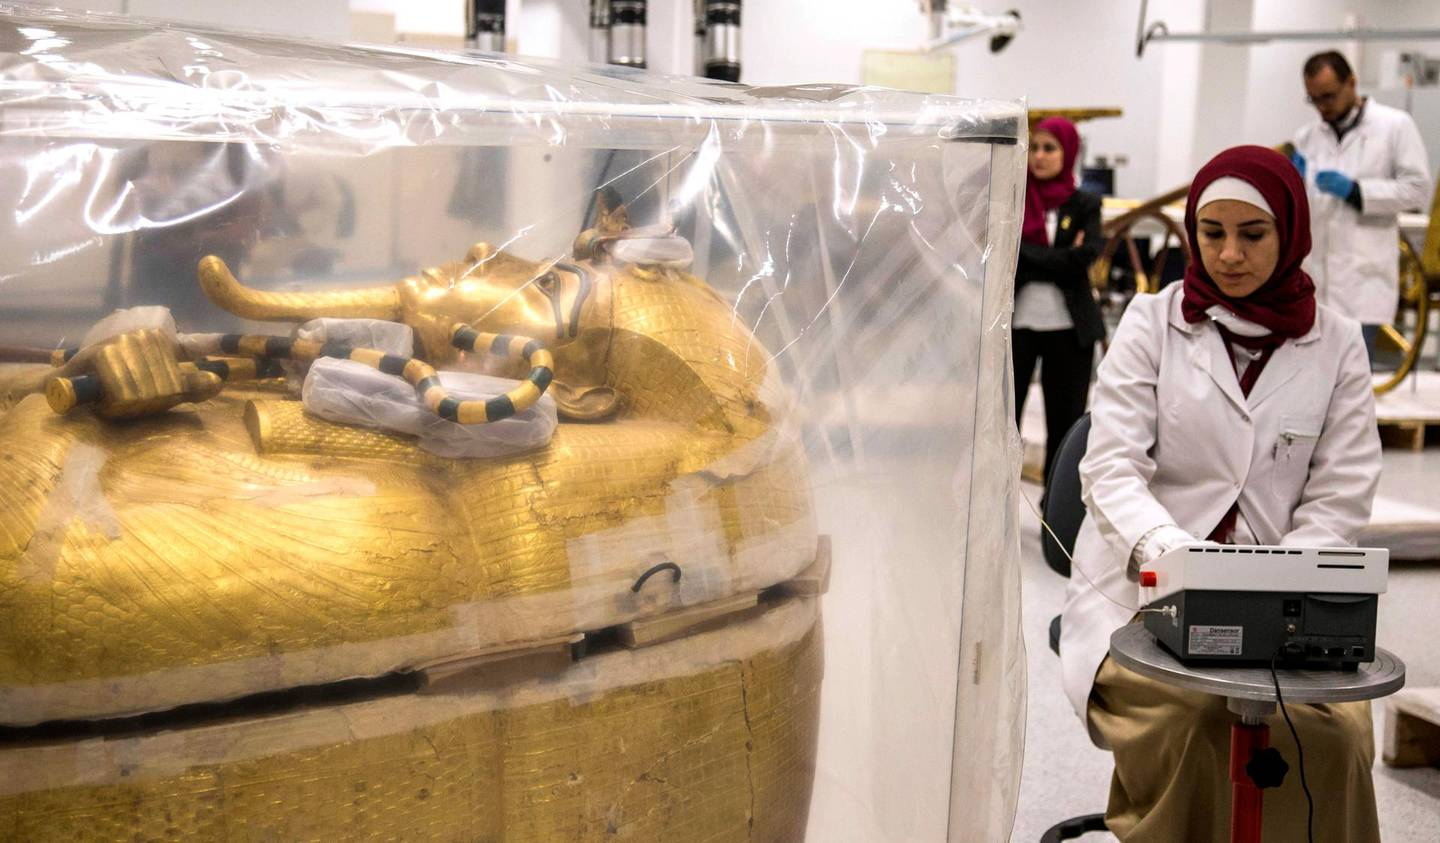 epa07755896 An Egyptian archeologist works next to the gilded coffin of King Tutankhamun that is undergoing a restoration process at the Grand Egyptian Museum in Giza, Egypt, 04 August 2019. The gilded coffin of king Tutankhamun was transported in mid-July from his tomb at the Valley of the Kings in Luxor to the Grand Egyptian Museum for an eight-month restoration process, the first since the tomb was discovered in 1922, before displaying among his treasured collection at the museum.  EPA/MOHAMED HOSSAM